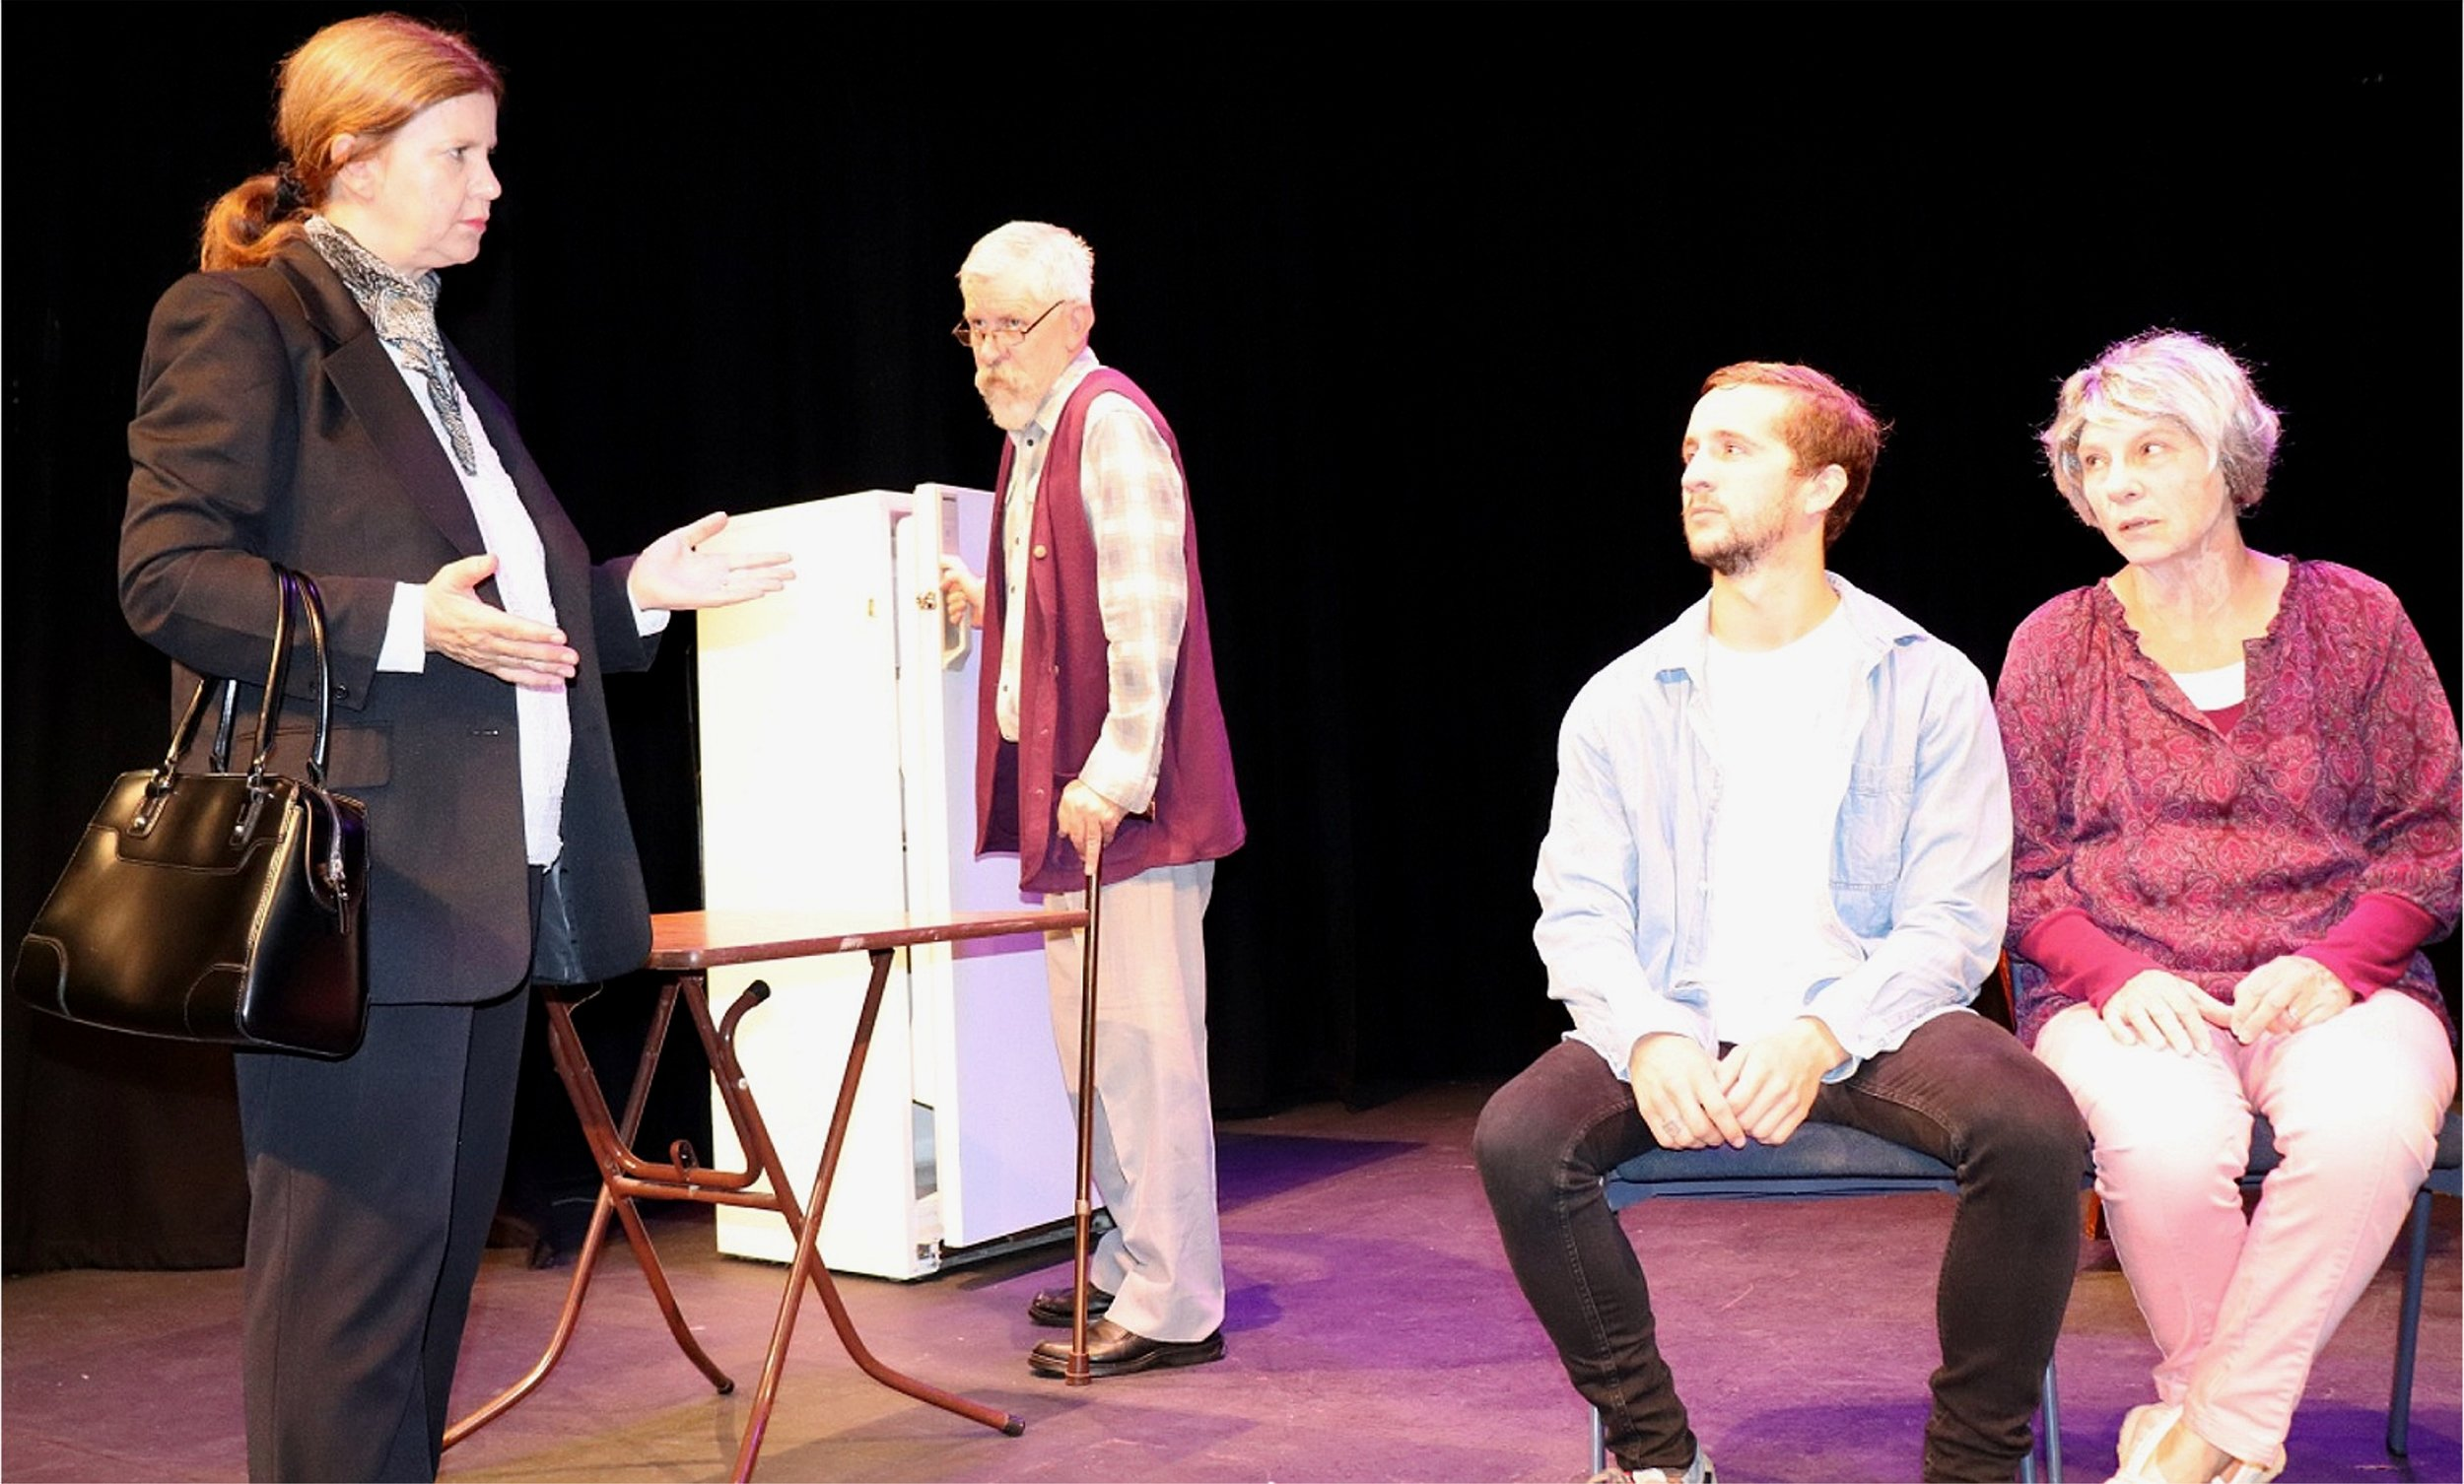 The Greening of Grace features Michele Diston, left, Michael Balmer, Elias Cuzens and Sharon Menzies.